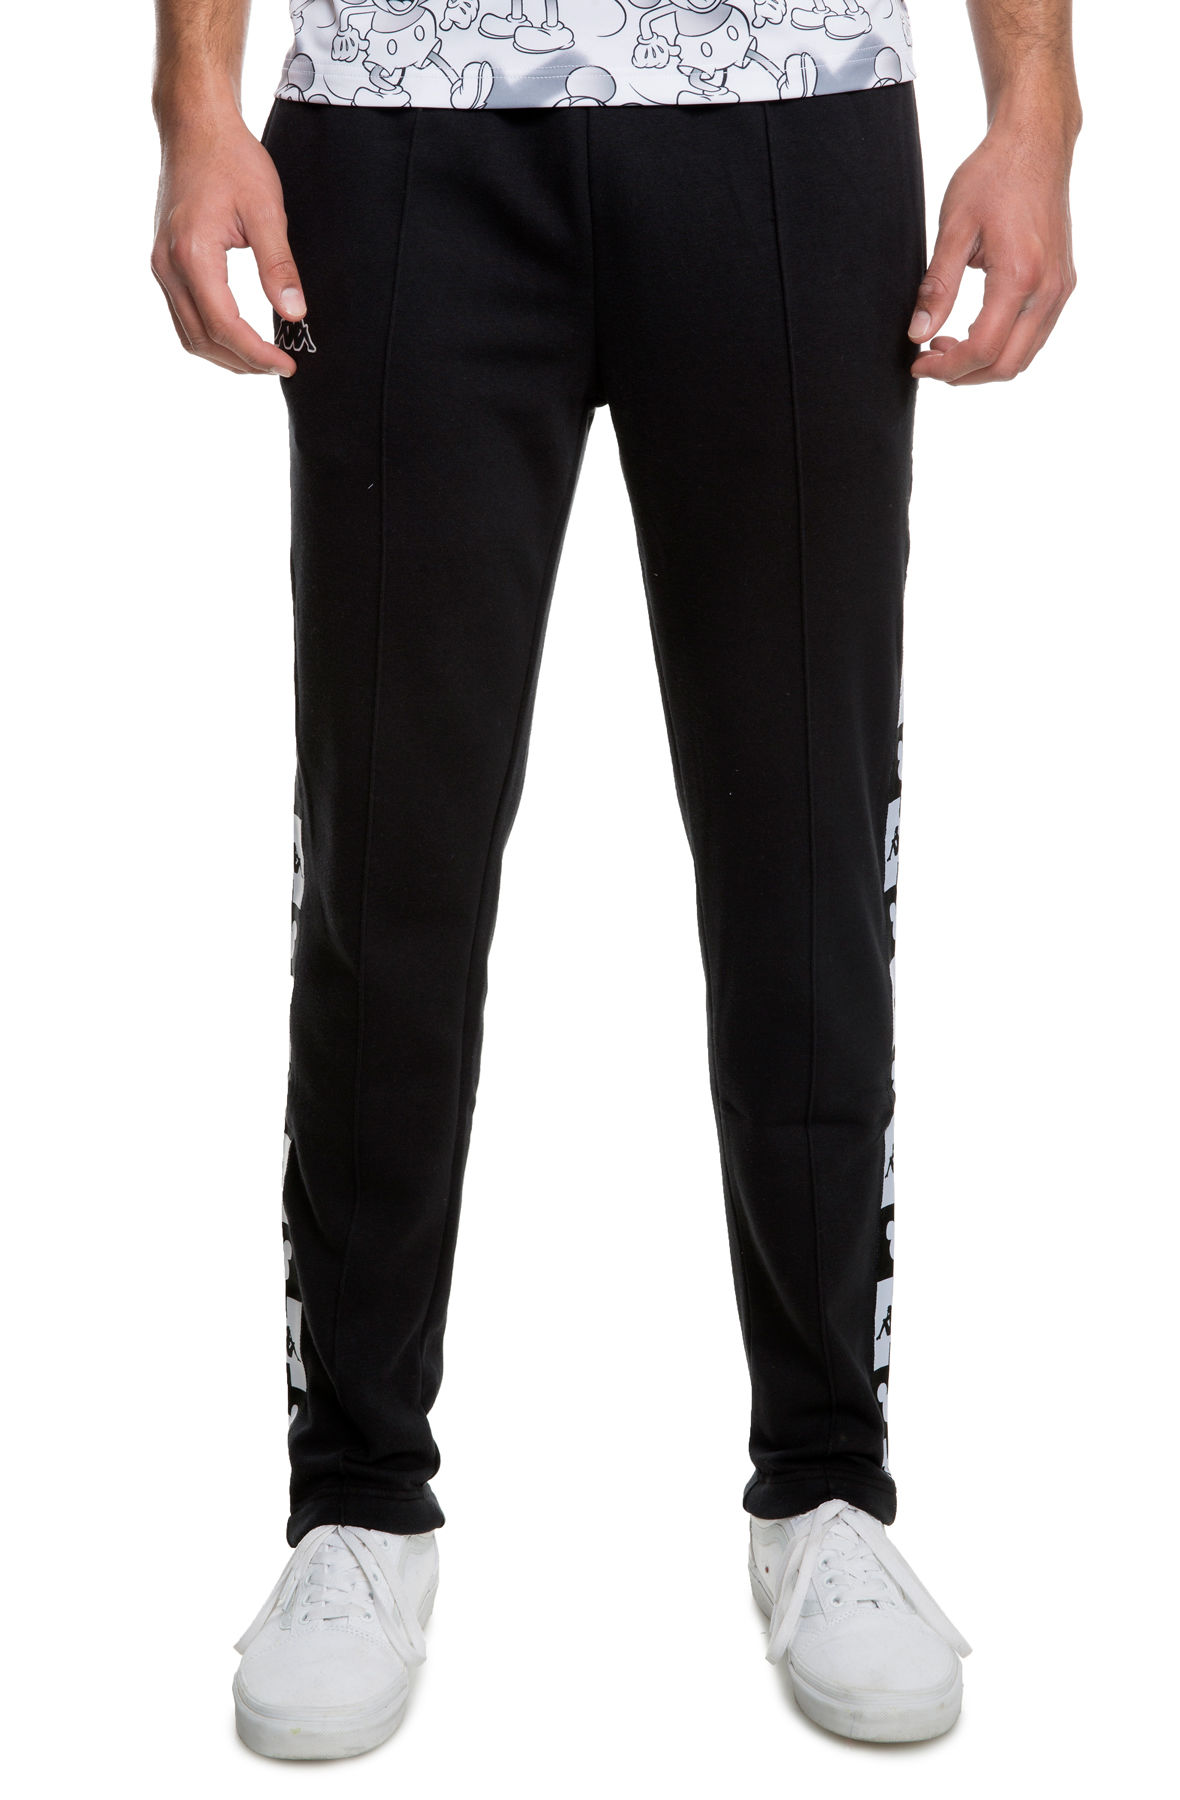 Image of The Authentic Alphonso Disney Pants in Black